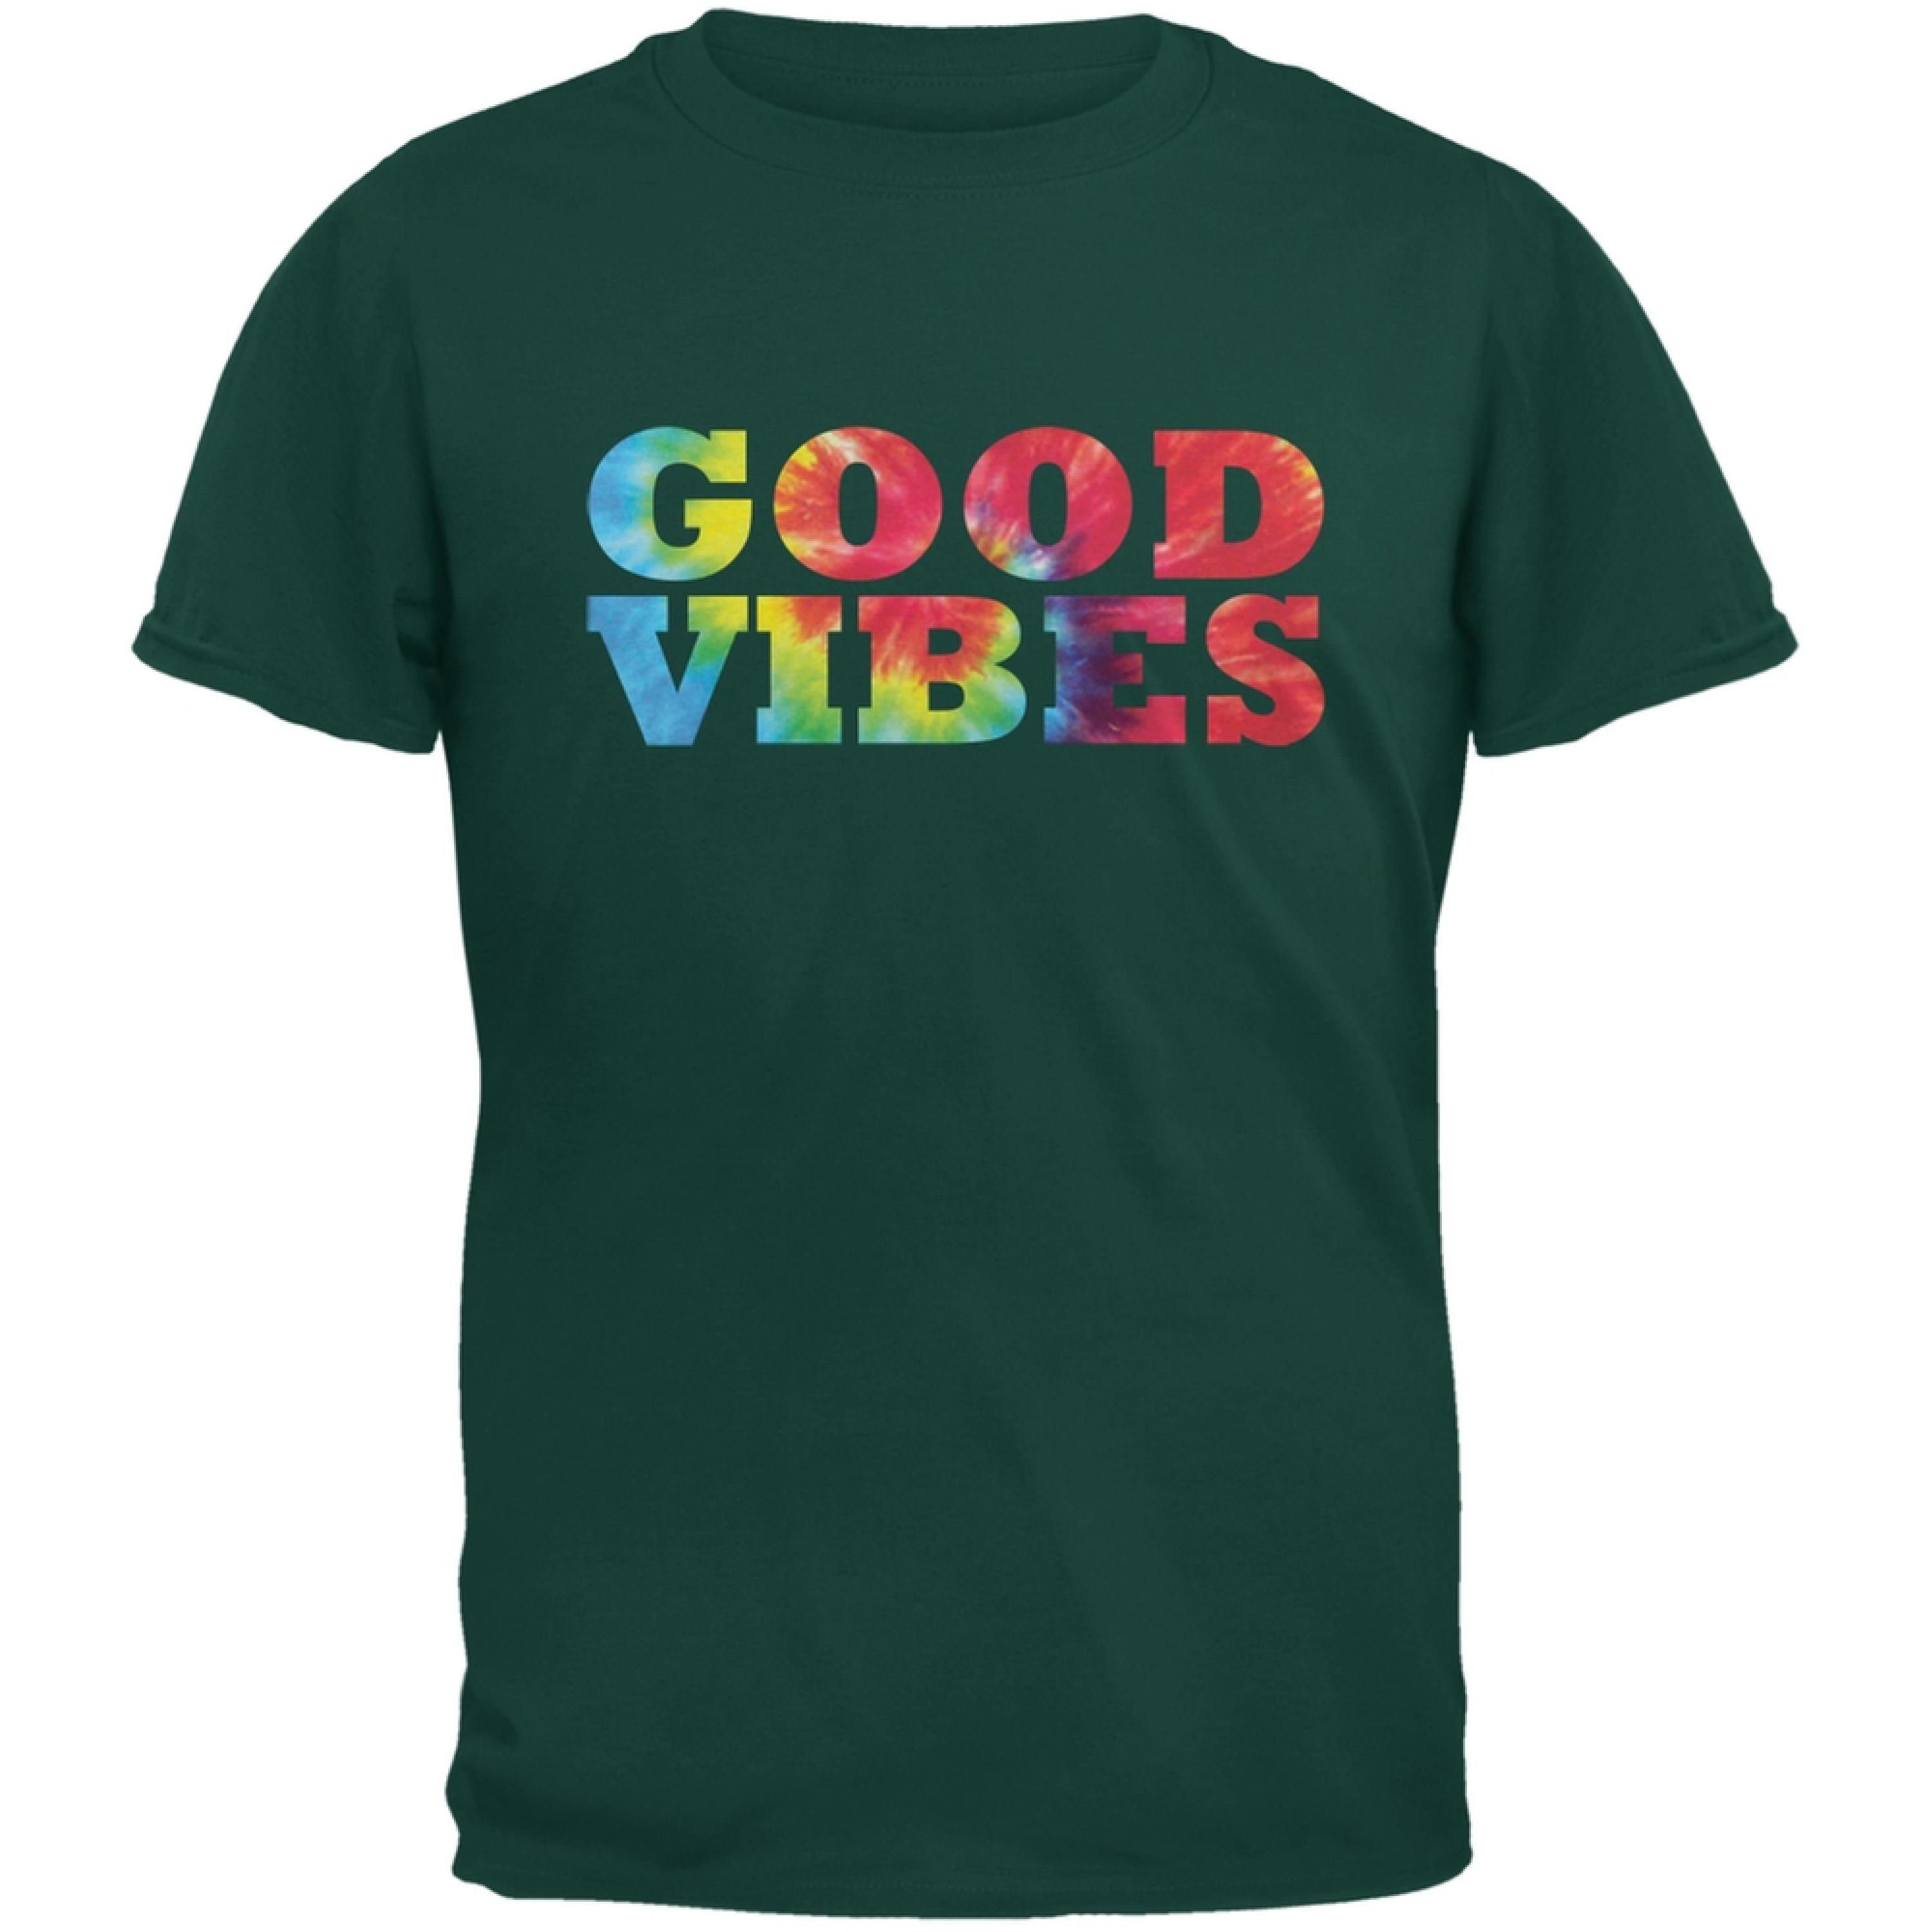 Tie Dye Good Vibes Forest Green Adult T-Shirt